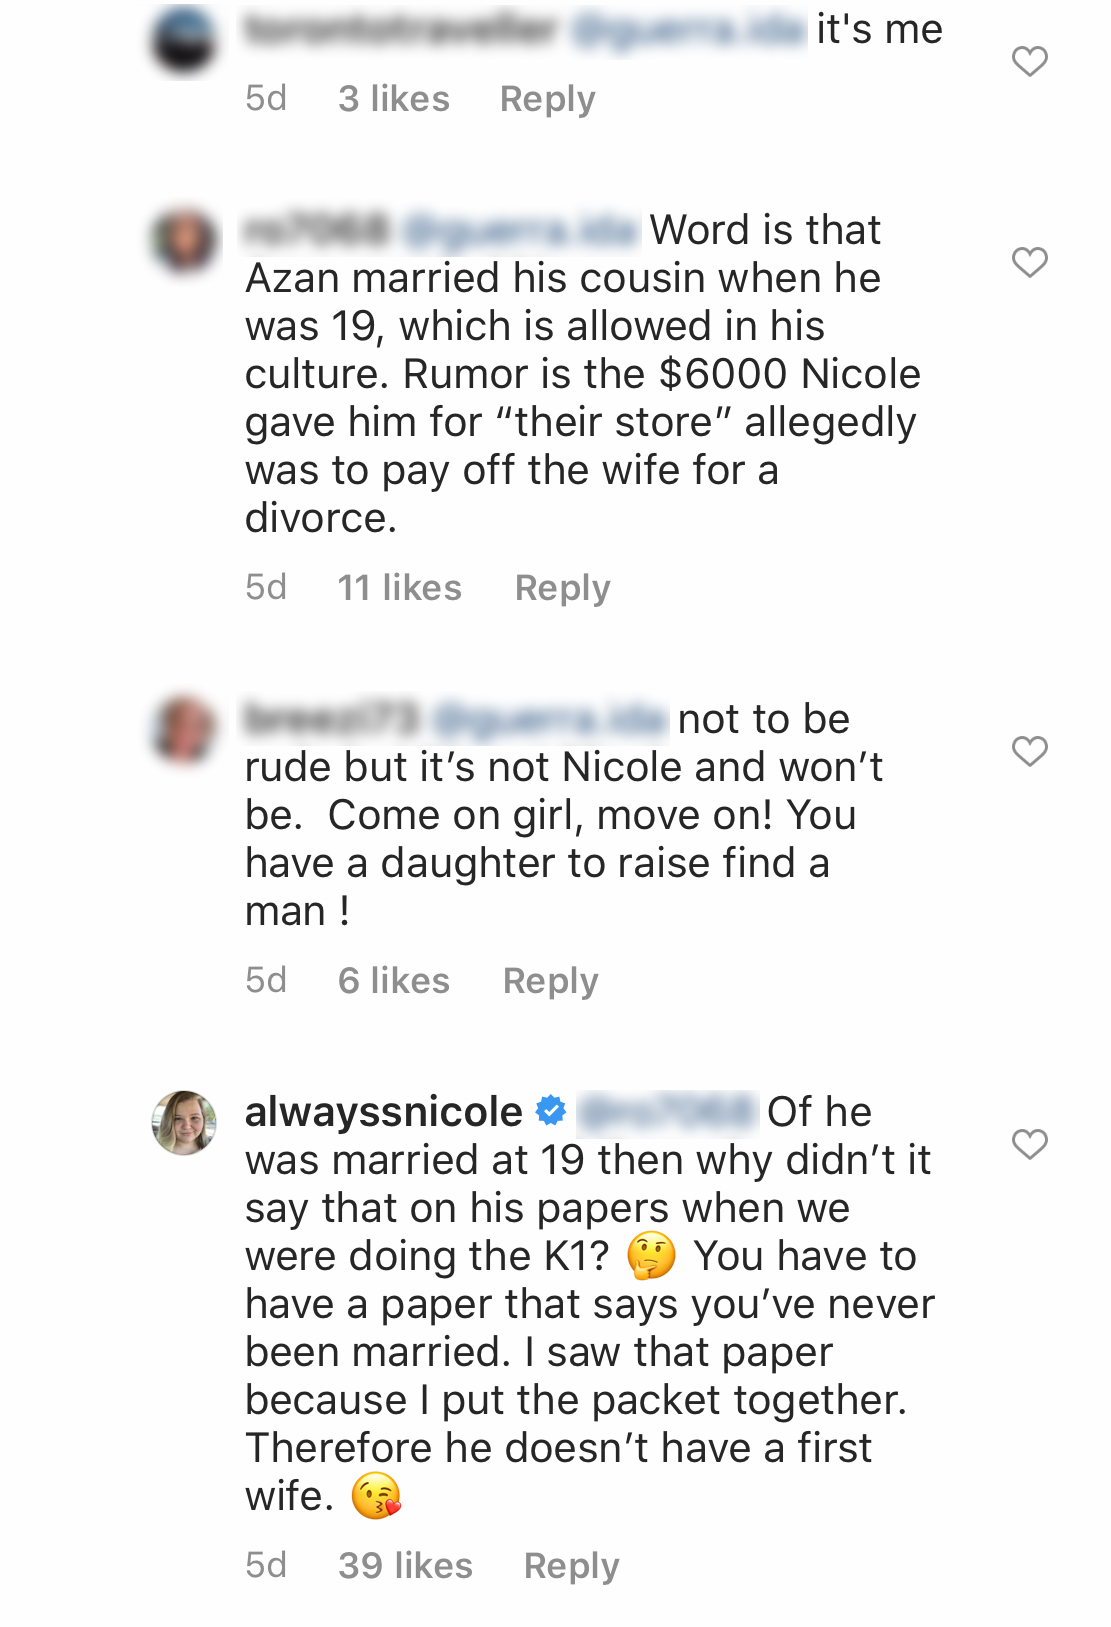 90 Day Fiance's Nicole Slams Rumors That Fiancé Azan Had a 'First Wife' Before They Met